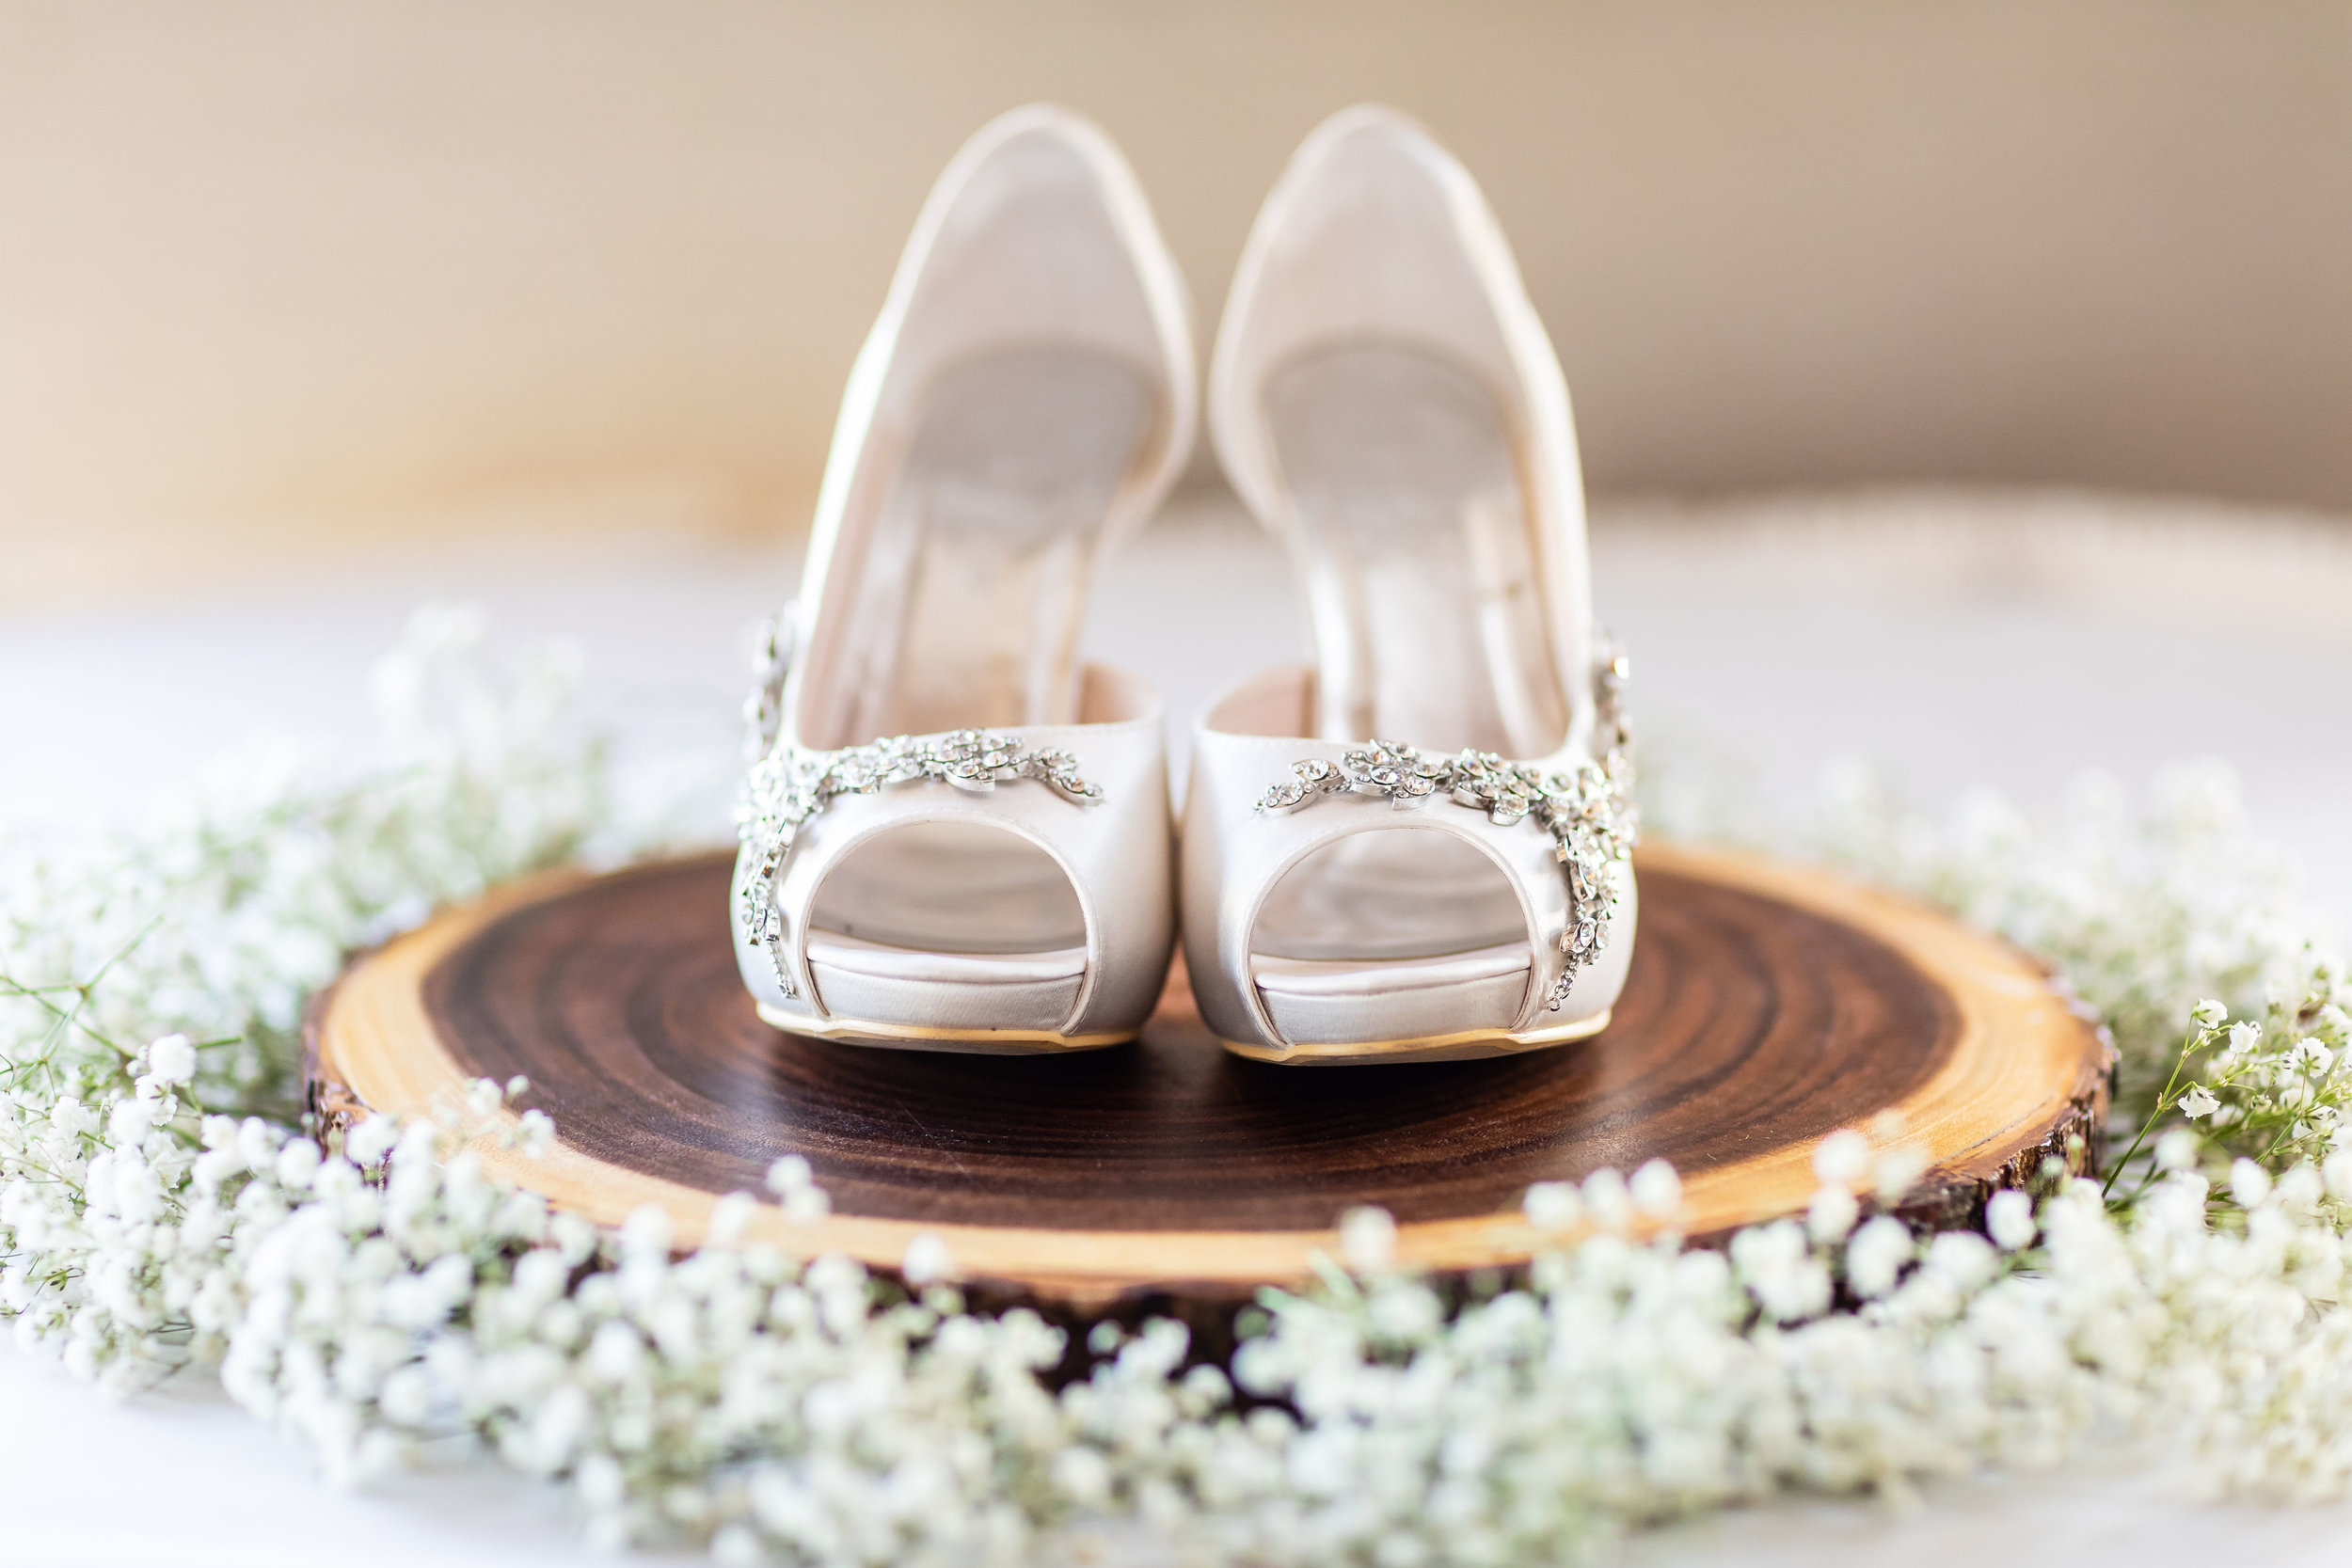 ! Photo of Wedding Heels surrounded by Baby's Breath.jpg